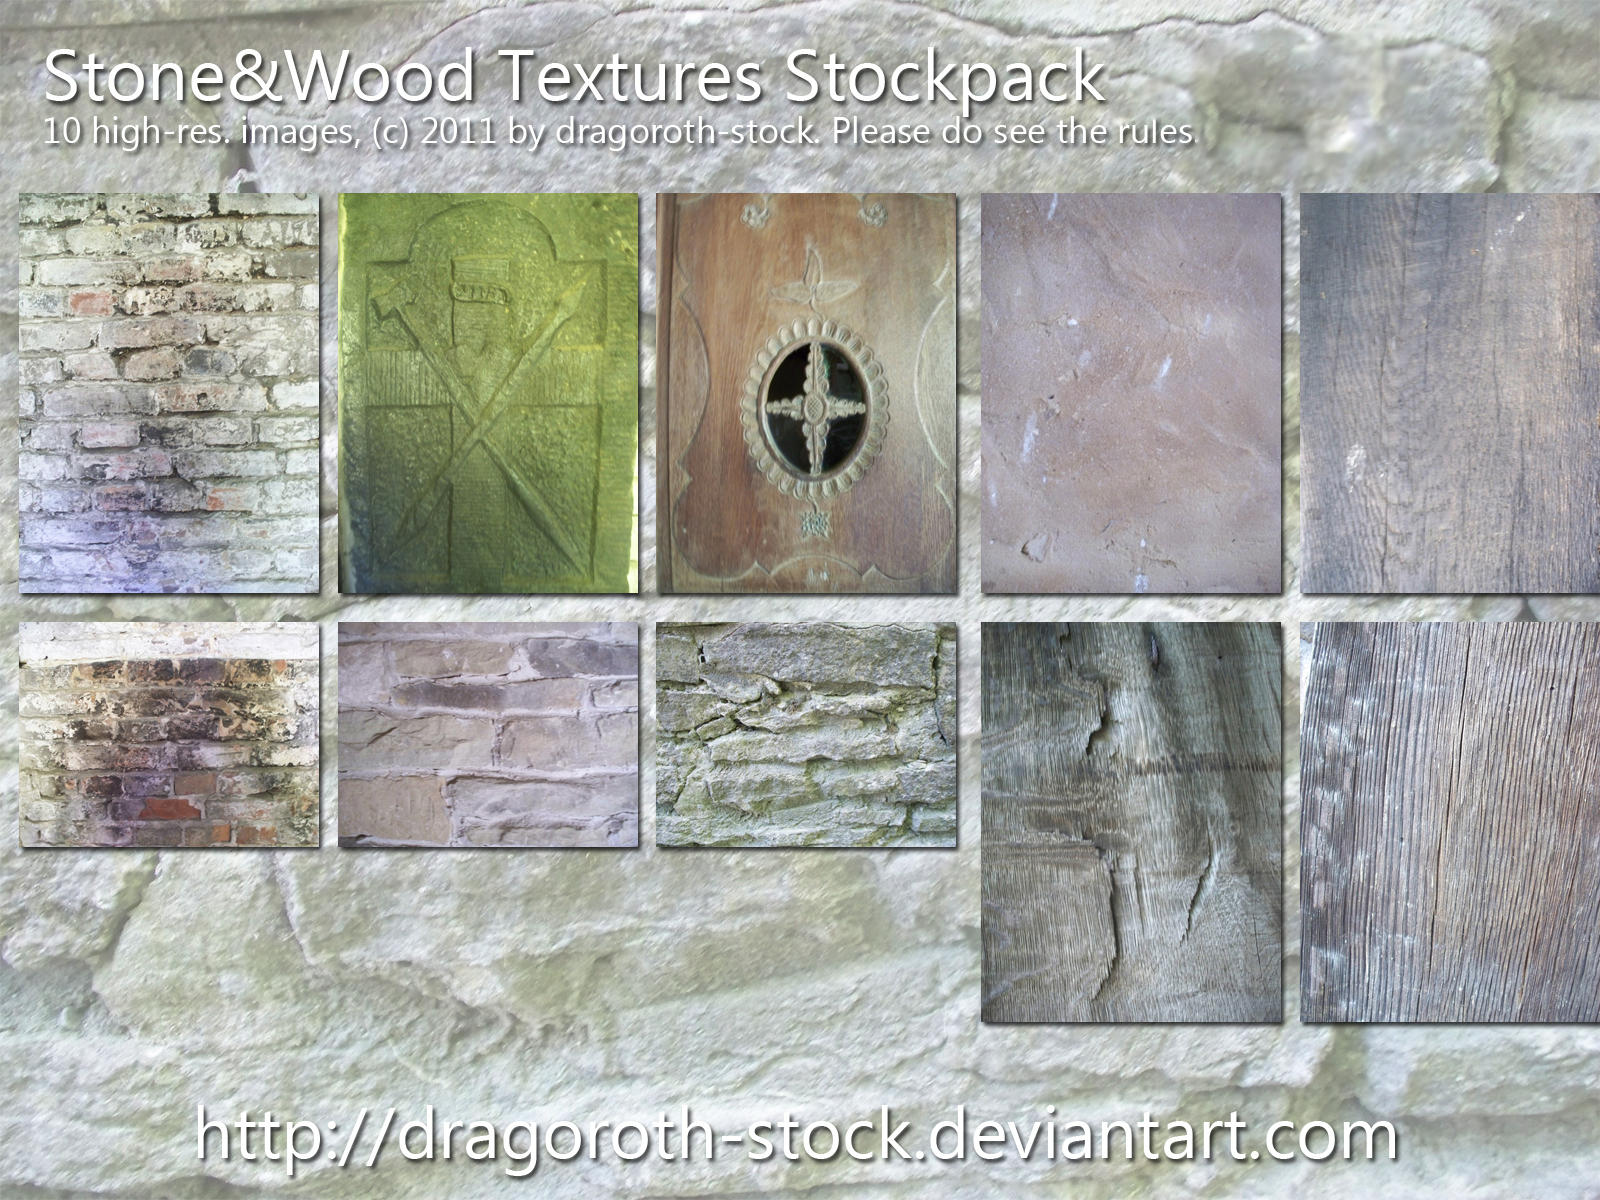 Stone+Wood Textures Stockpack by Dragoroth-stock